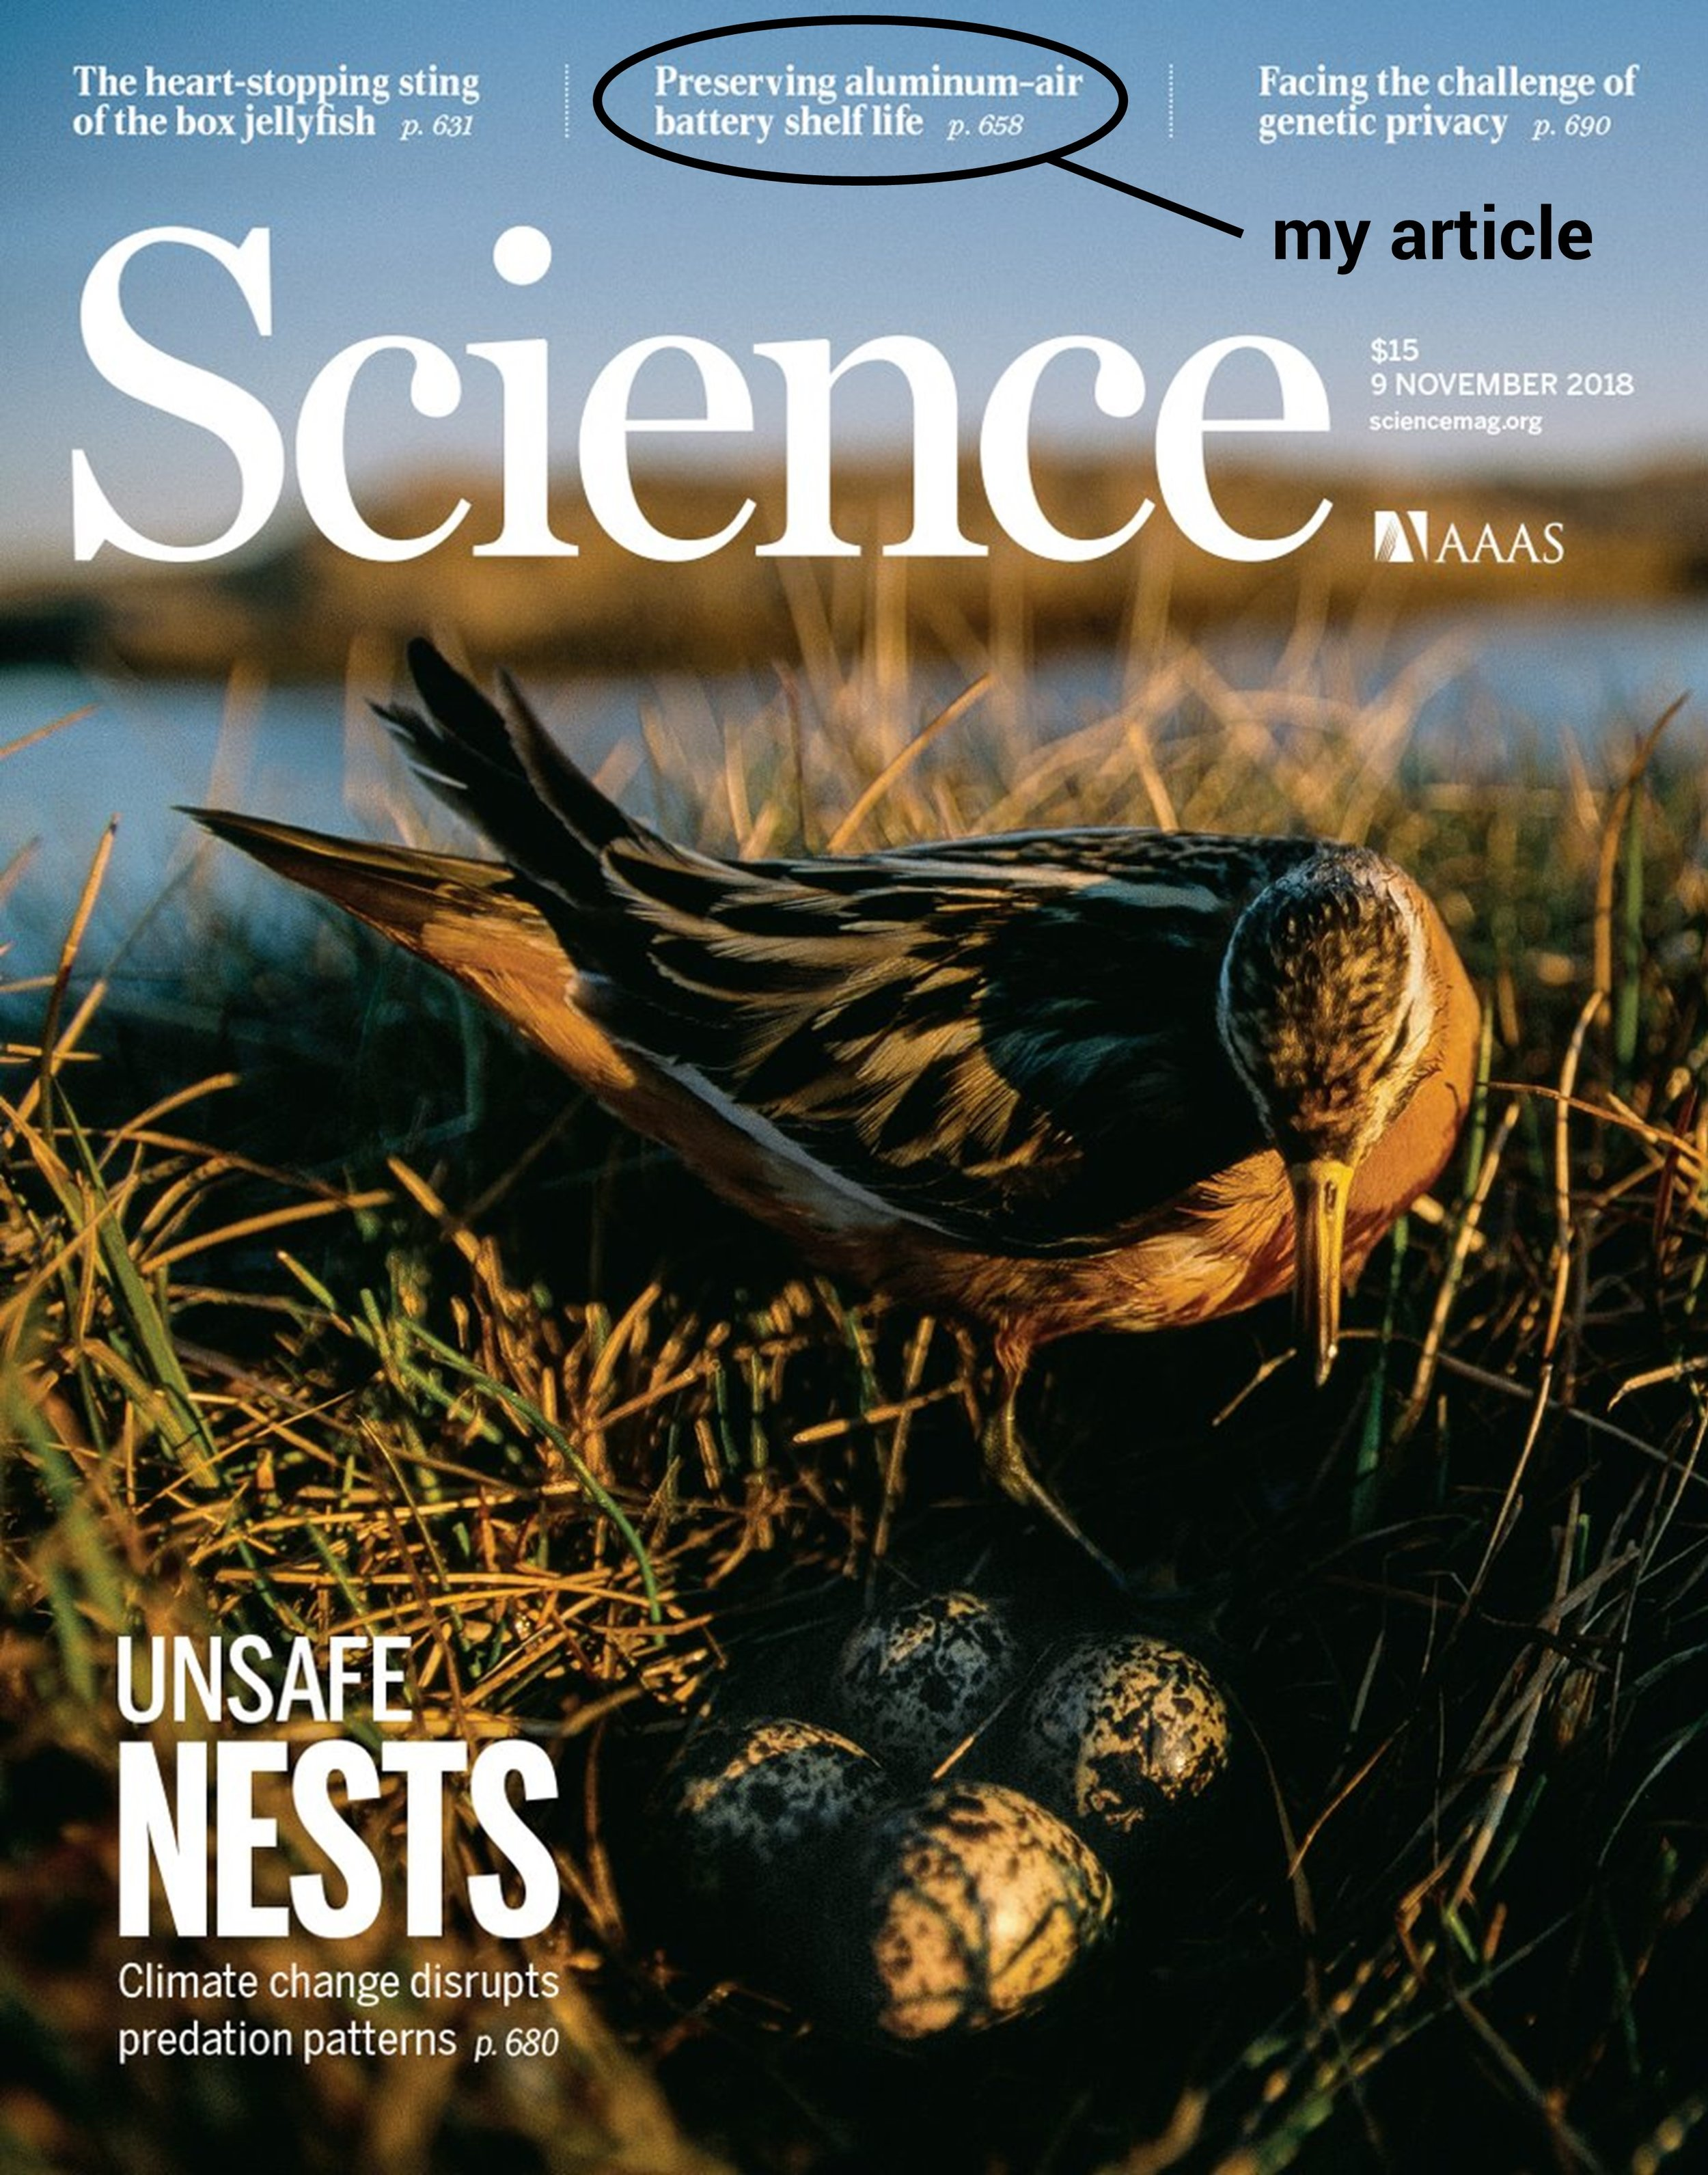 My article spotlighted on the front cover of  Science .